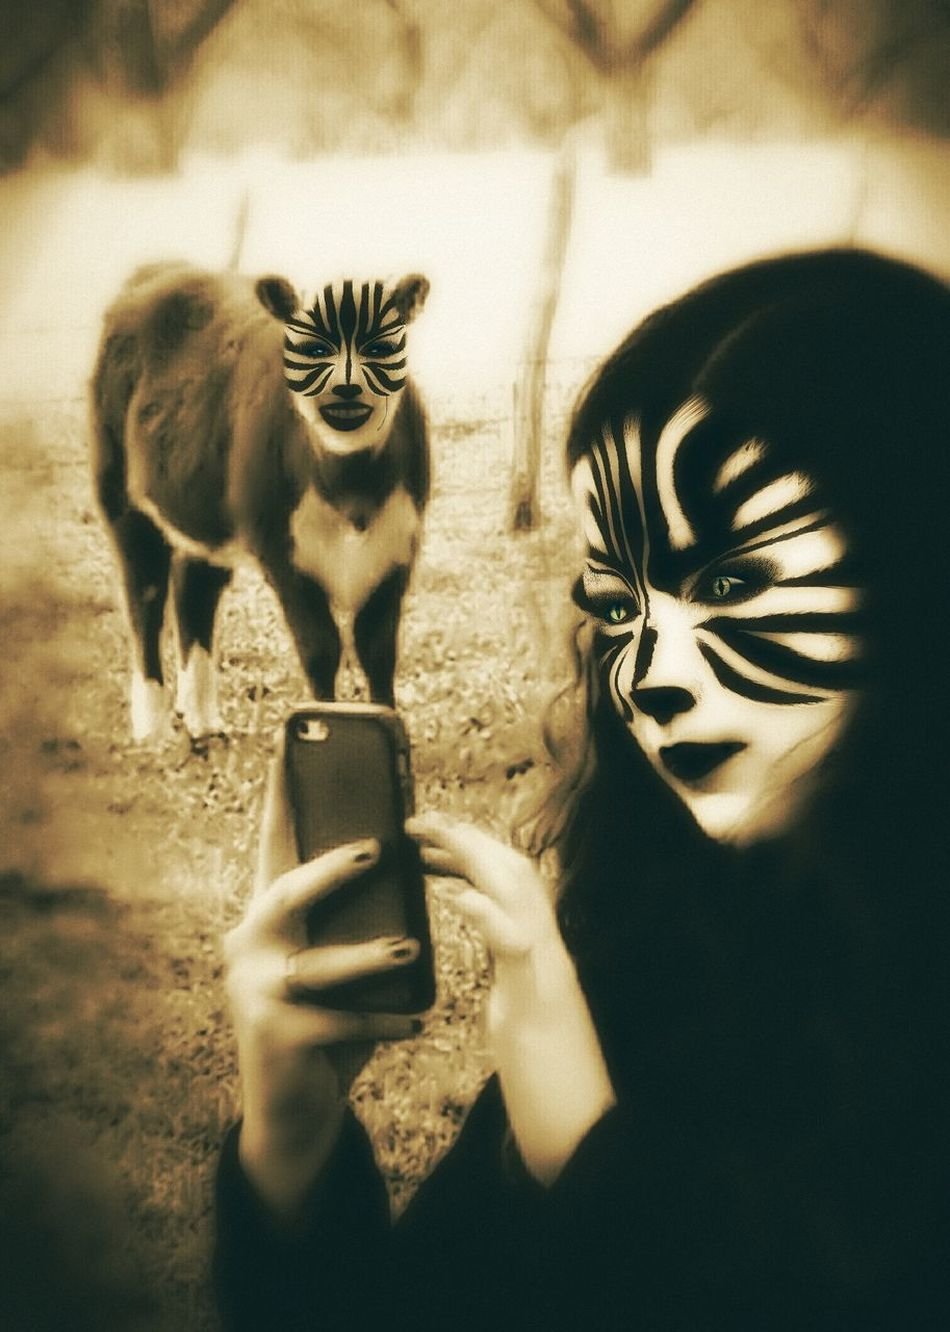 Cheese! Honduras Vacation Hi! Relaxing Enjoying Life Hello World I Have No Idea What Im Doing Wtf Lol Crazy Odd Surrealist Art Bizzare Surreal Monochromatic Cow Zebra Stripes IPhone Photography Selfie Portrait